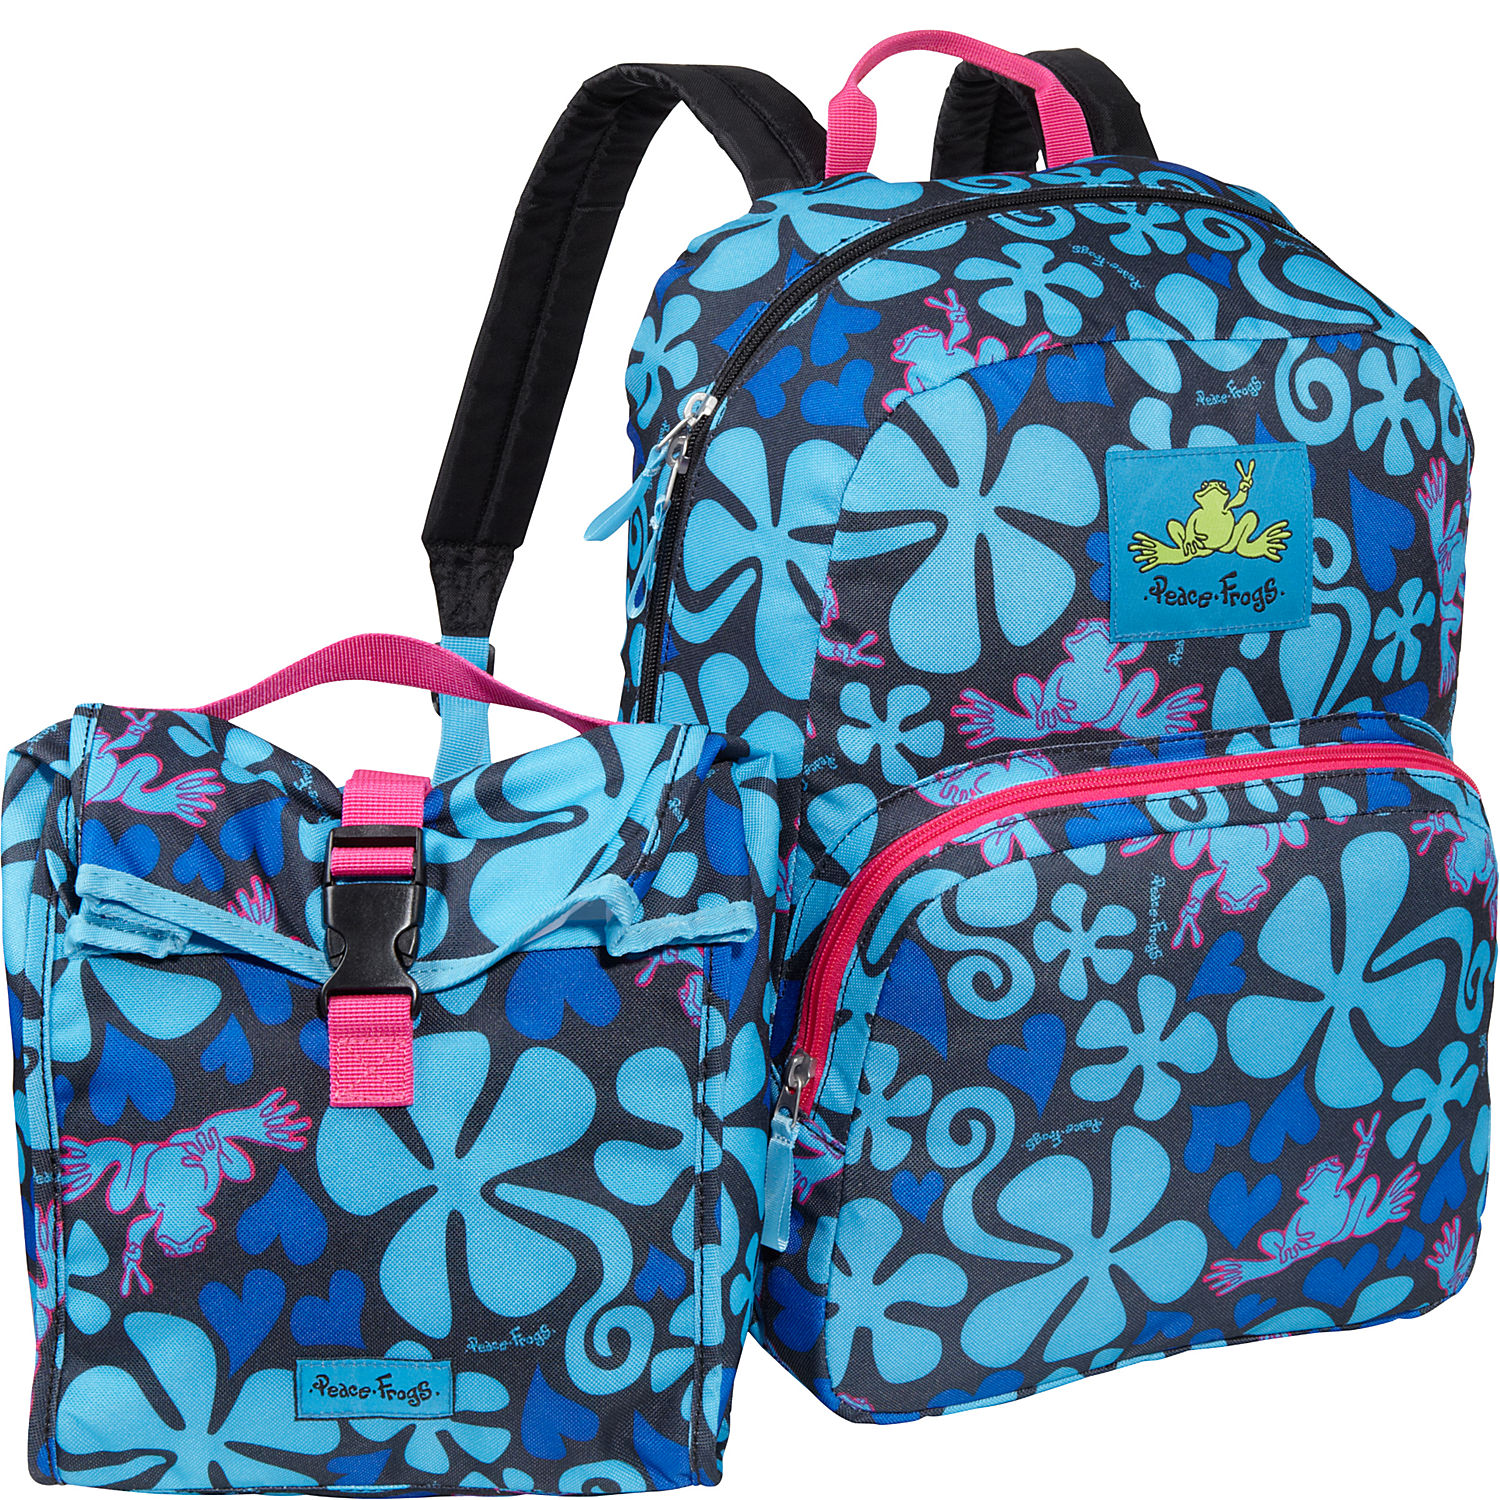 d2a908b953 Backpack With Matching Lunch Bag - Top Reviewed Backpacks